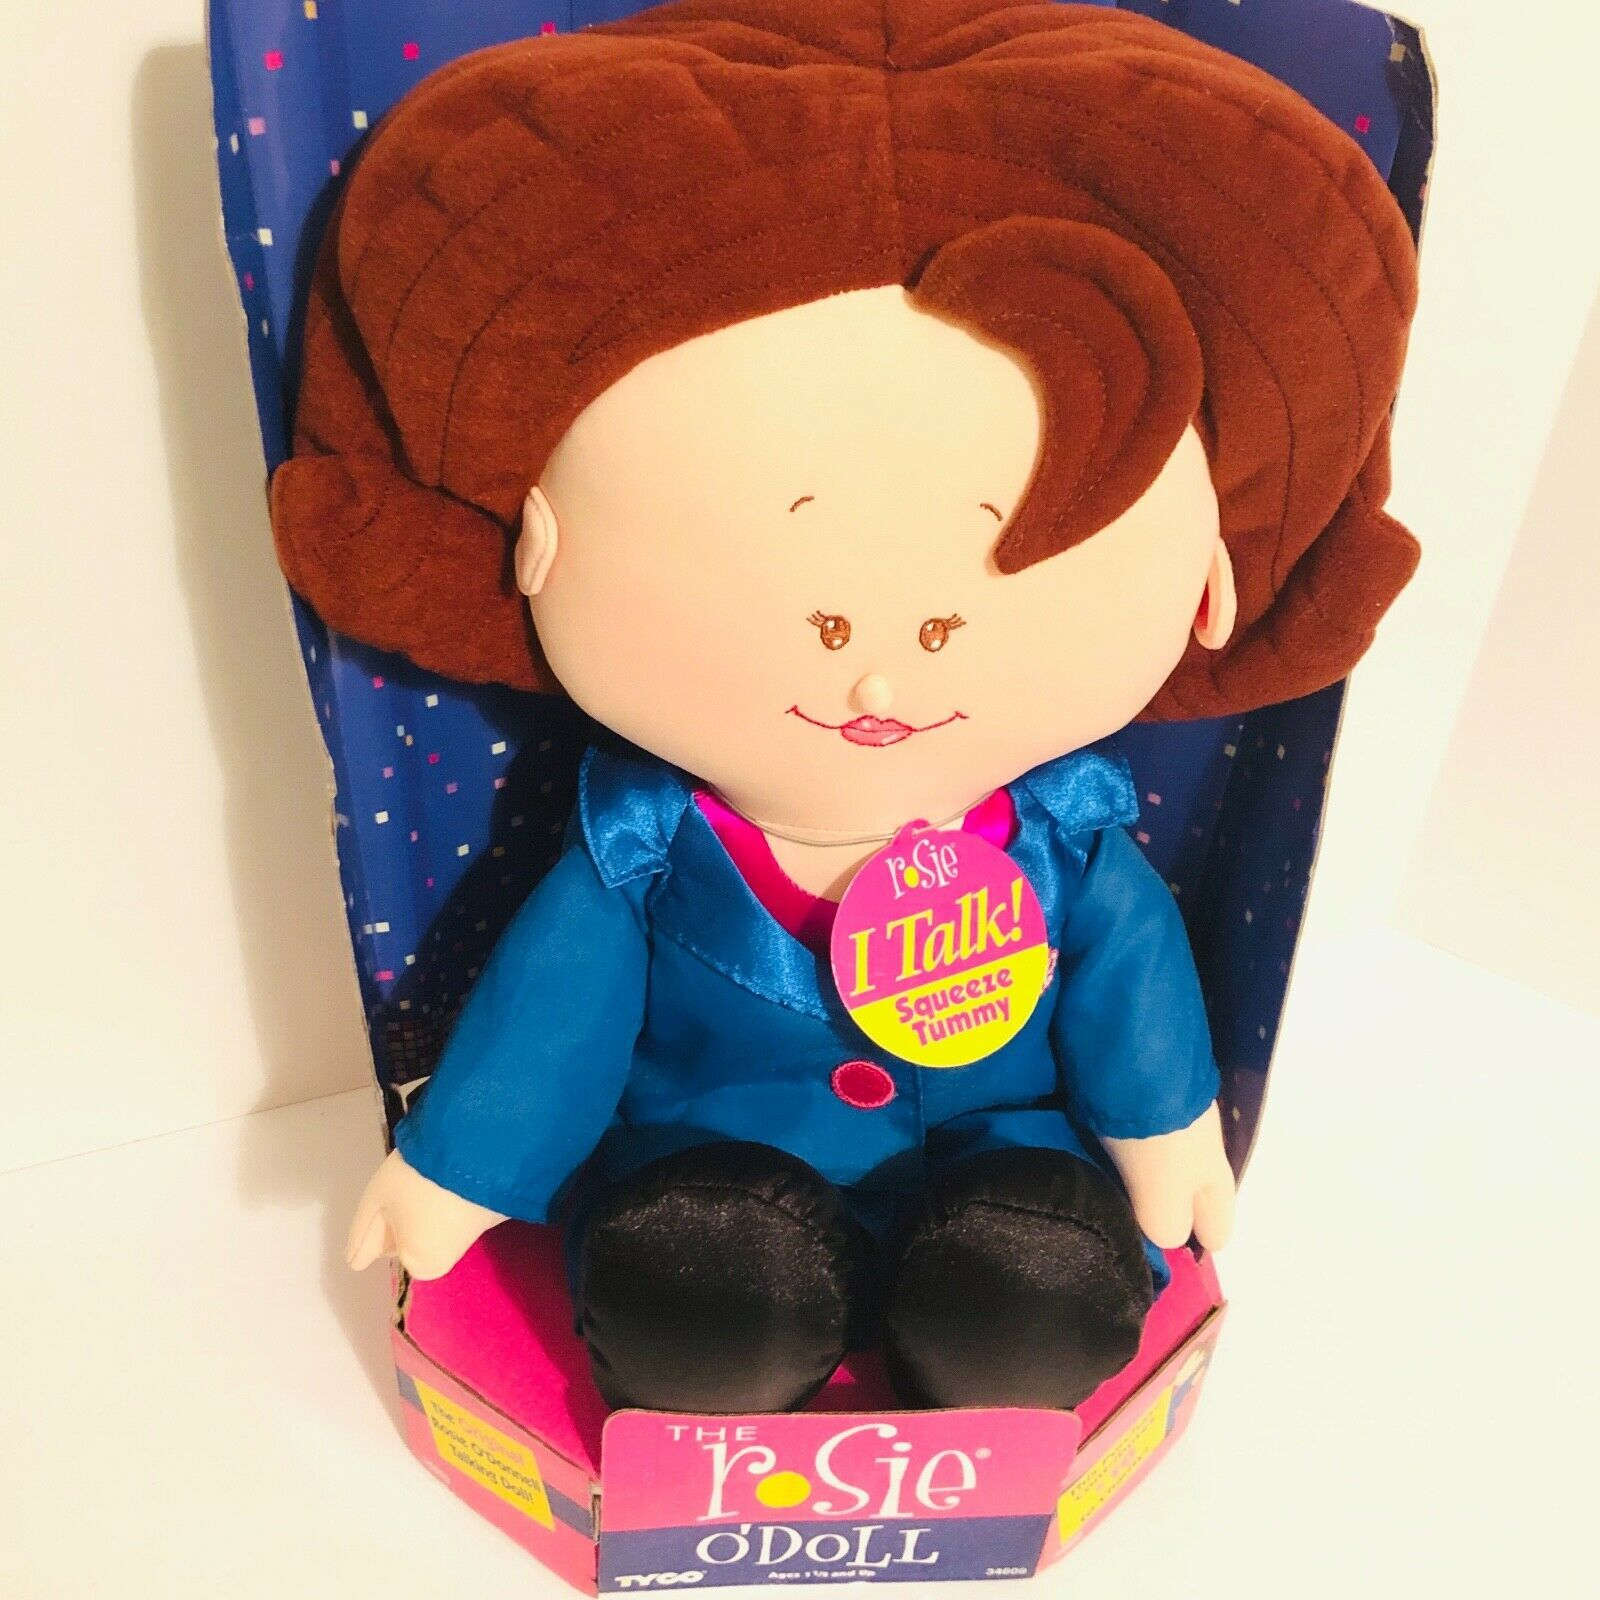 """New 1997 Rosie O'Donnell (O'Doll) Talking Celebrity Plush Doll 18"""" Tyco- Tested image 2"""